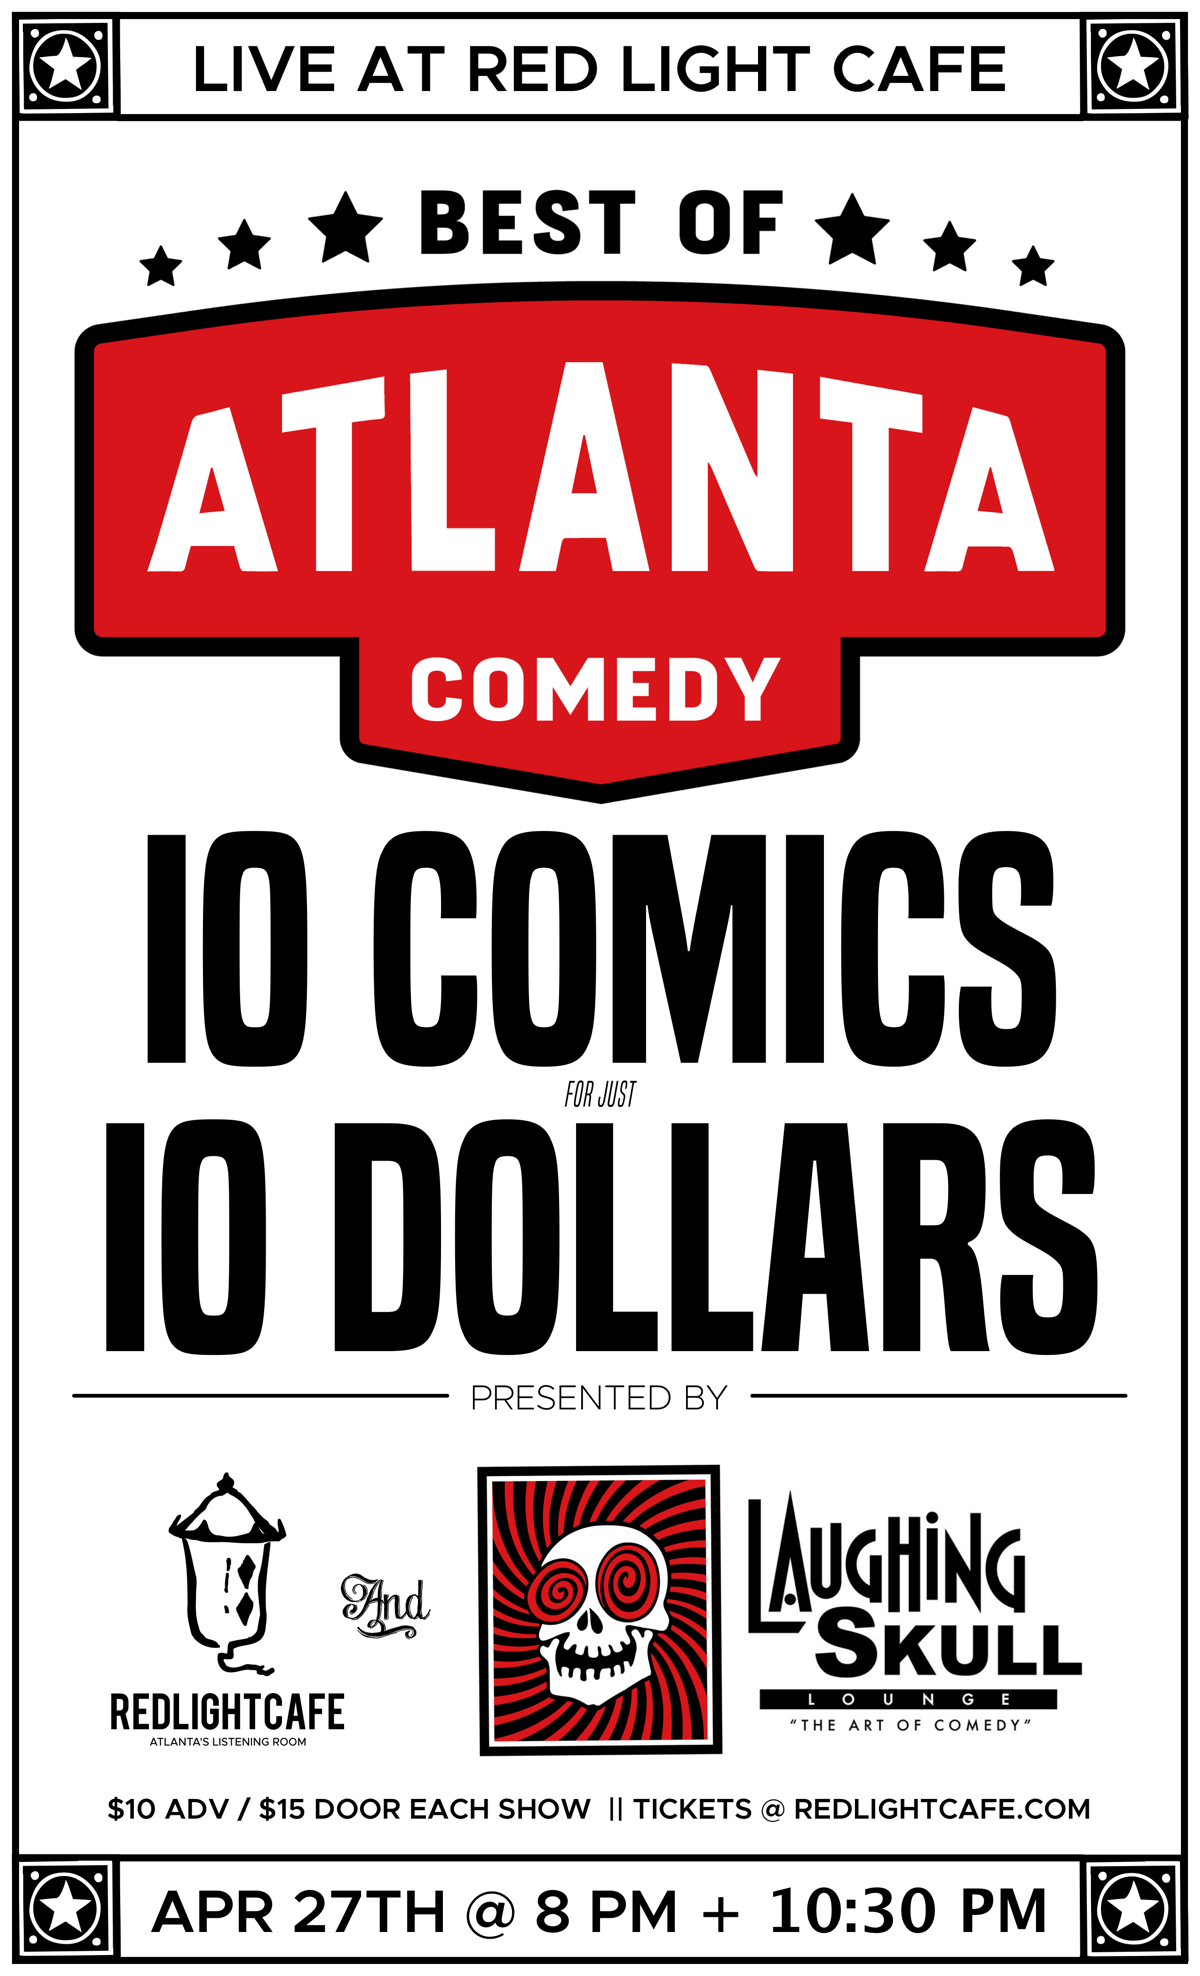 Best of Atlanta Comedy (10:30pm Late Show) at Red Light Café presented by Laughing Skull Lounge — April 27, 2019 — Red Light Café, Atlanta, GA